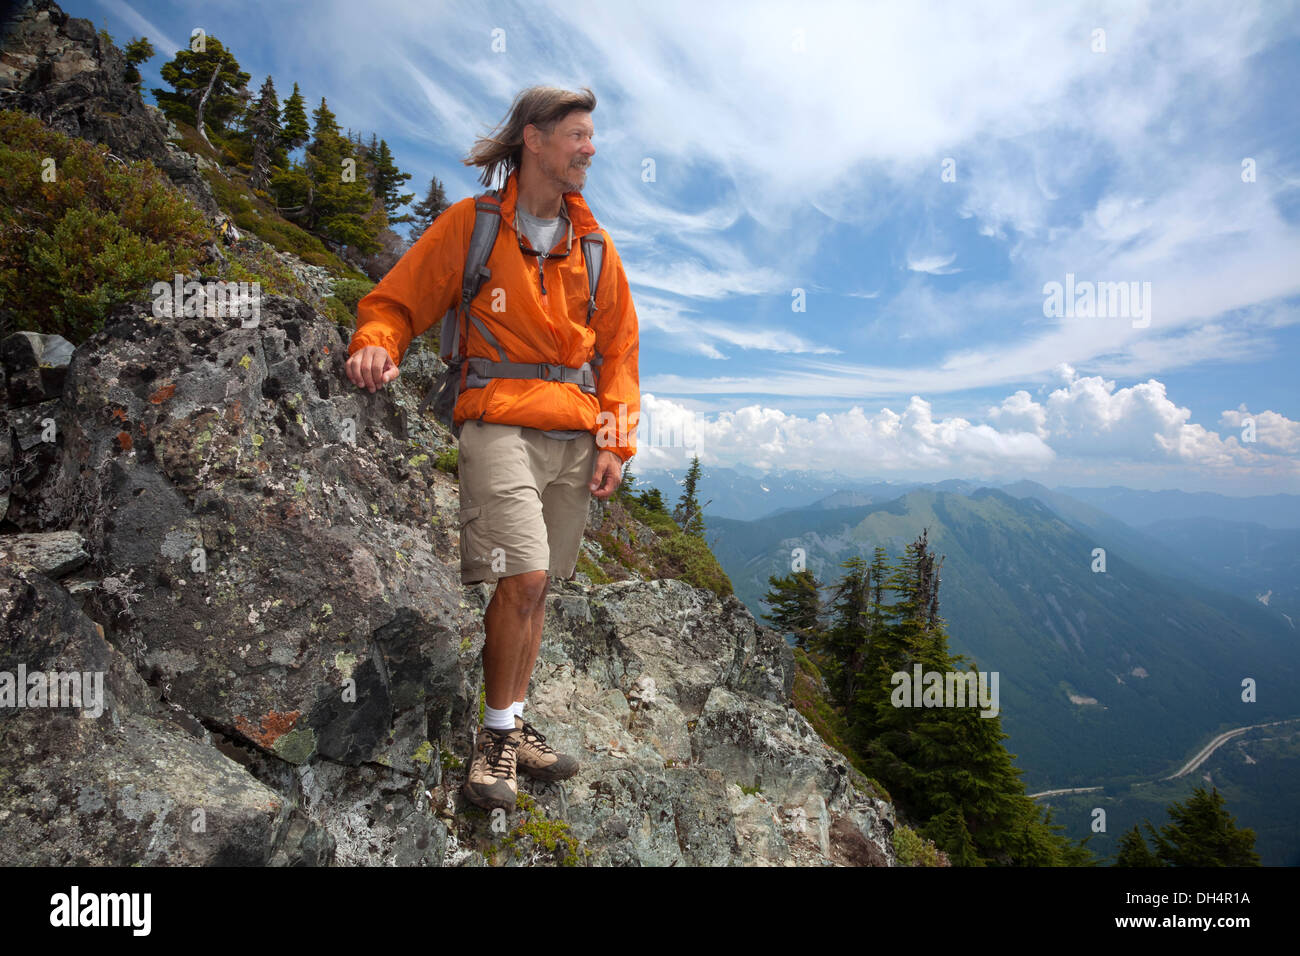 WASHINGTON - Hiker overlooking the Interstate 90 corridor from the trail near the rocky summit of McClellan Butte. - Stock Image